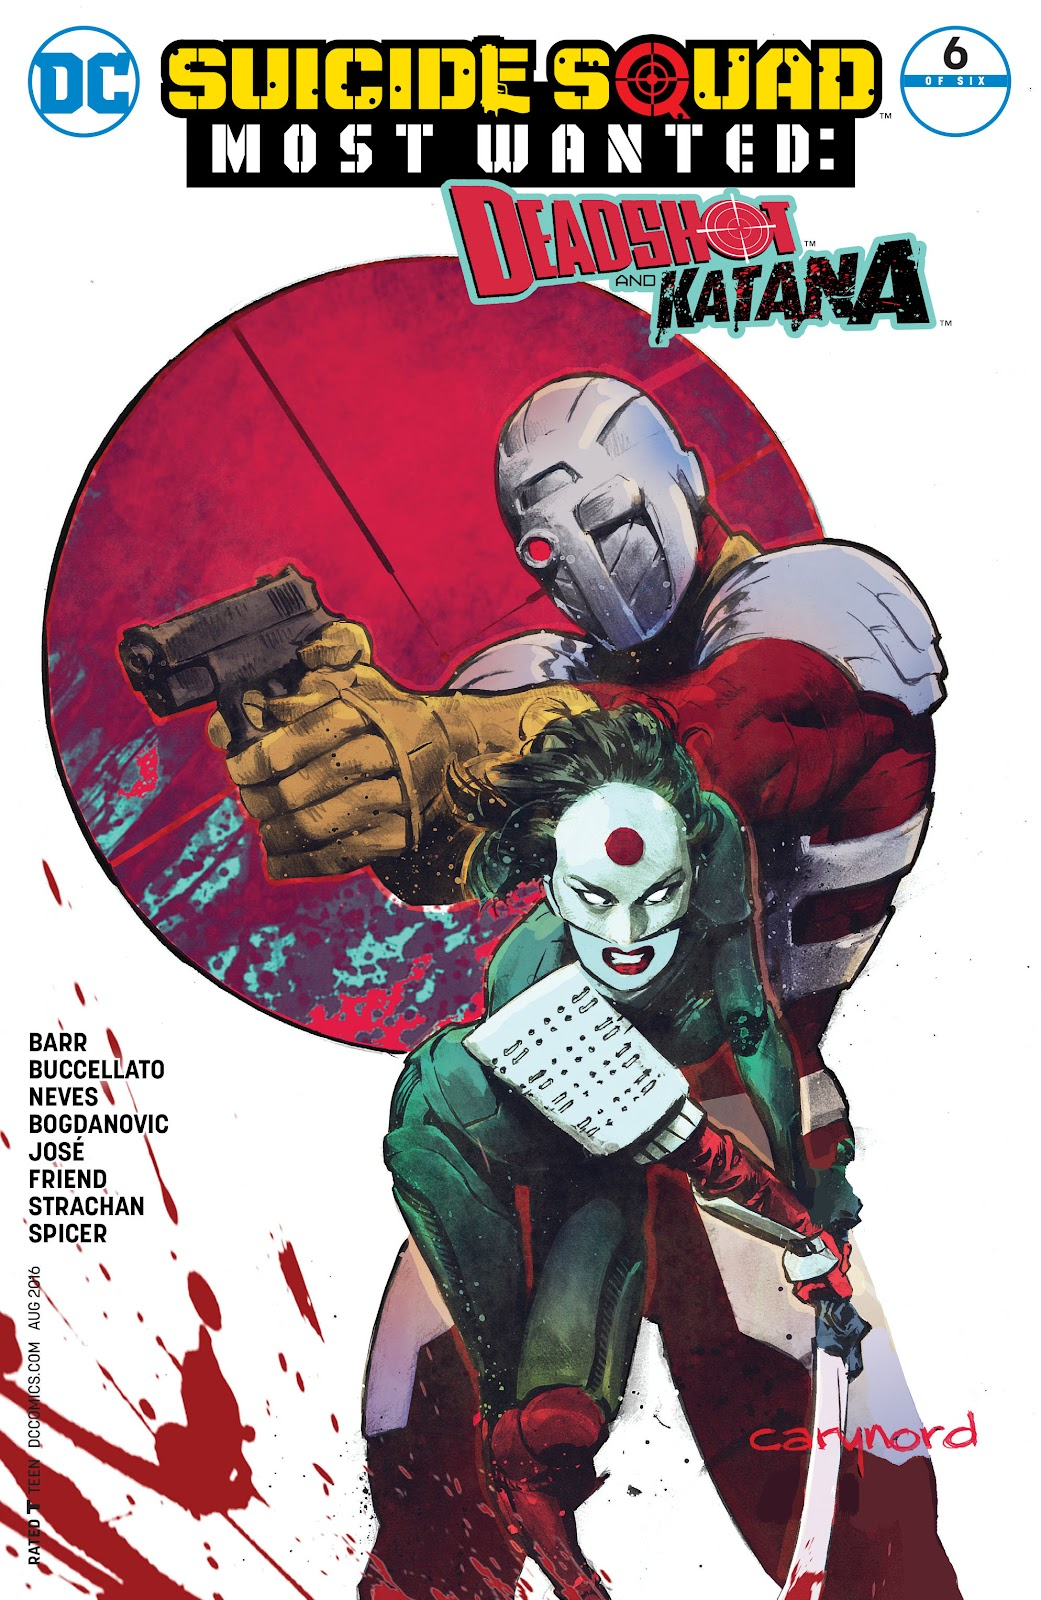 Comic Suicide Squad Most Wanted: Deadshot and Katana issue 6